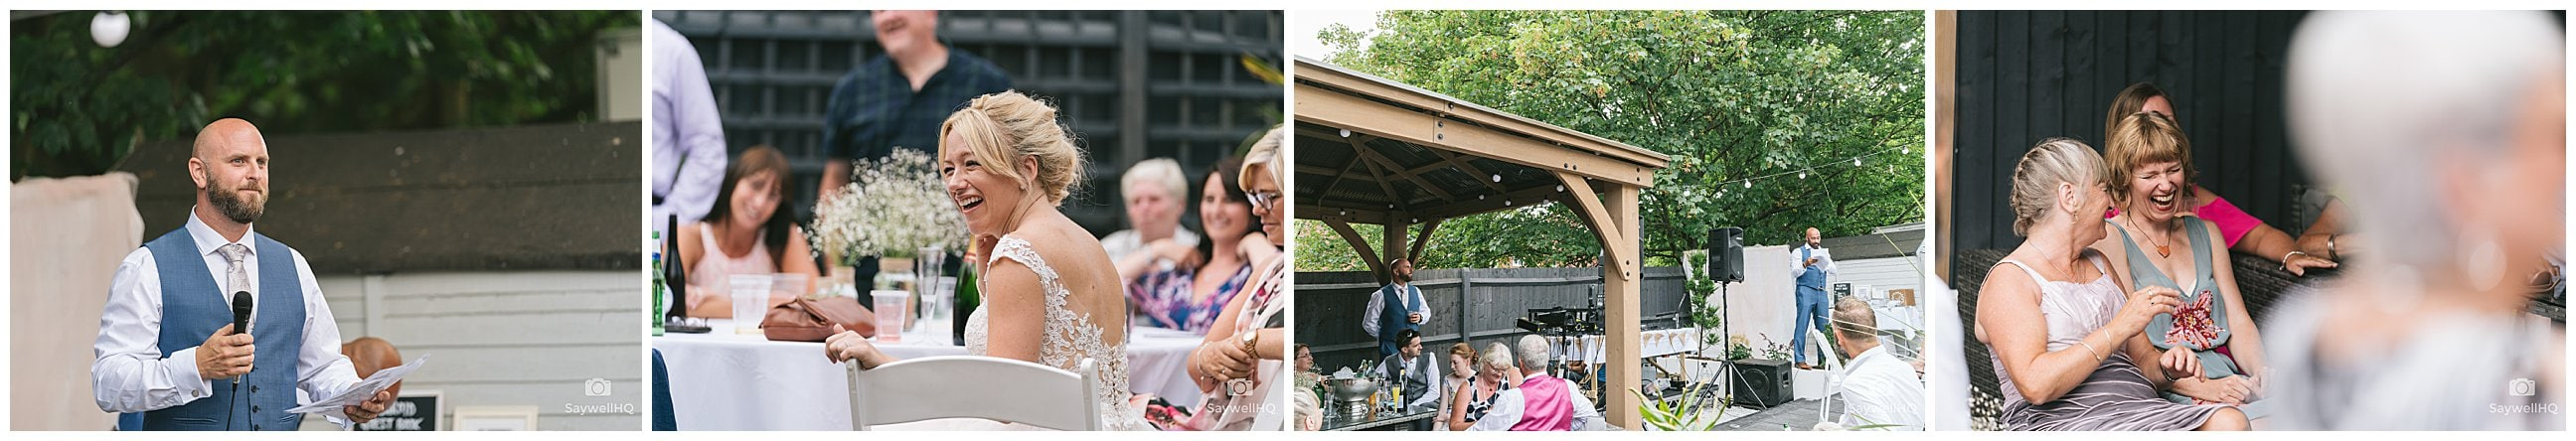 Derby Wedding Photography - wedding guests enjoy the wedding speeches in the garden of the bride and groom